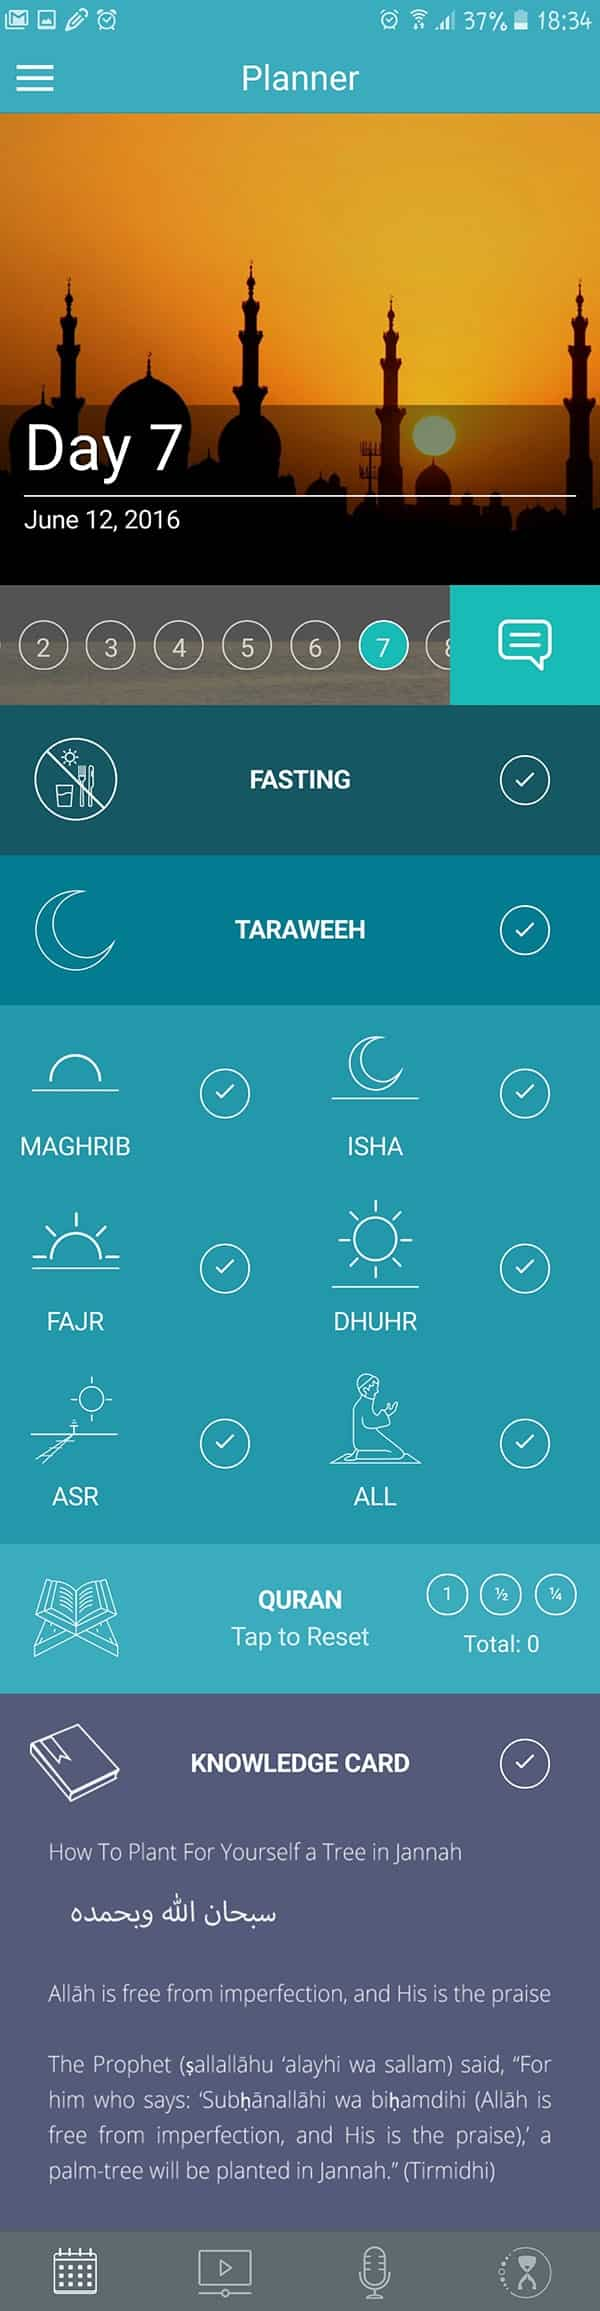 Technology Meets Iman: The New Ramadan Legacy App 2016 | ProductiveMuslim